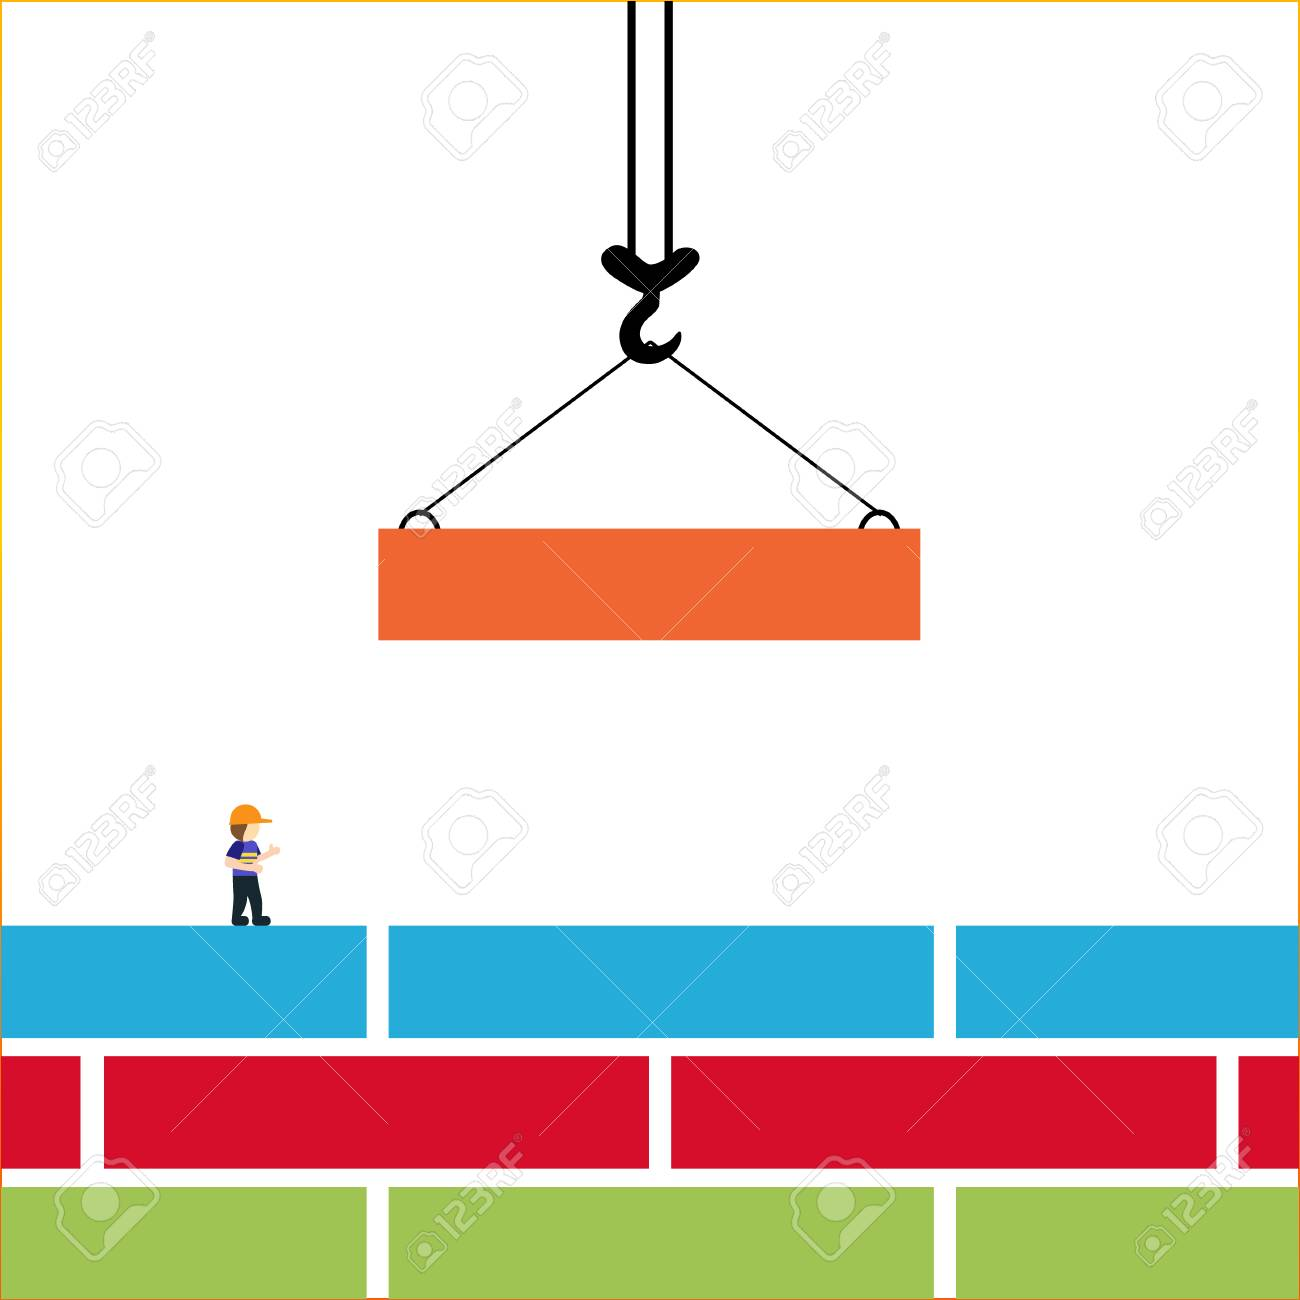 hight resolution of bright vector illustration on the theme of building the crane hook lowers down the orange